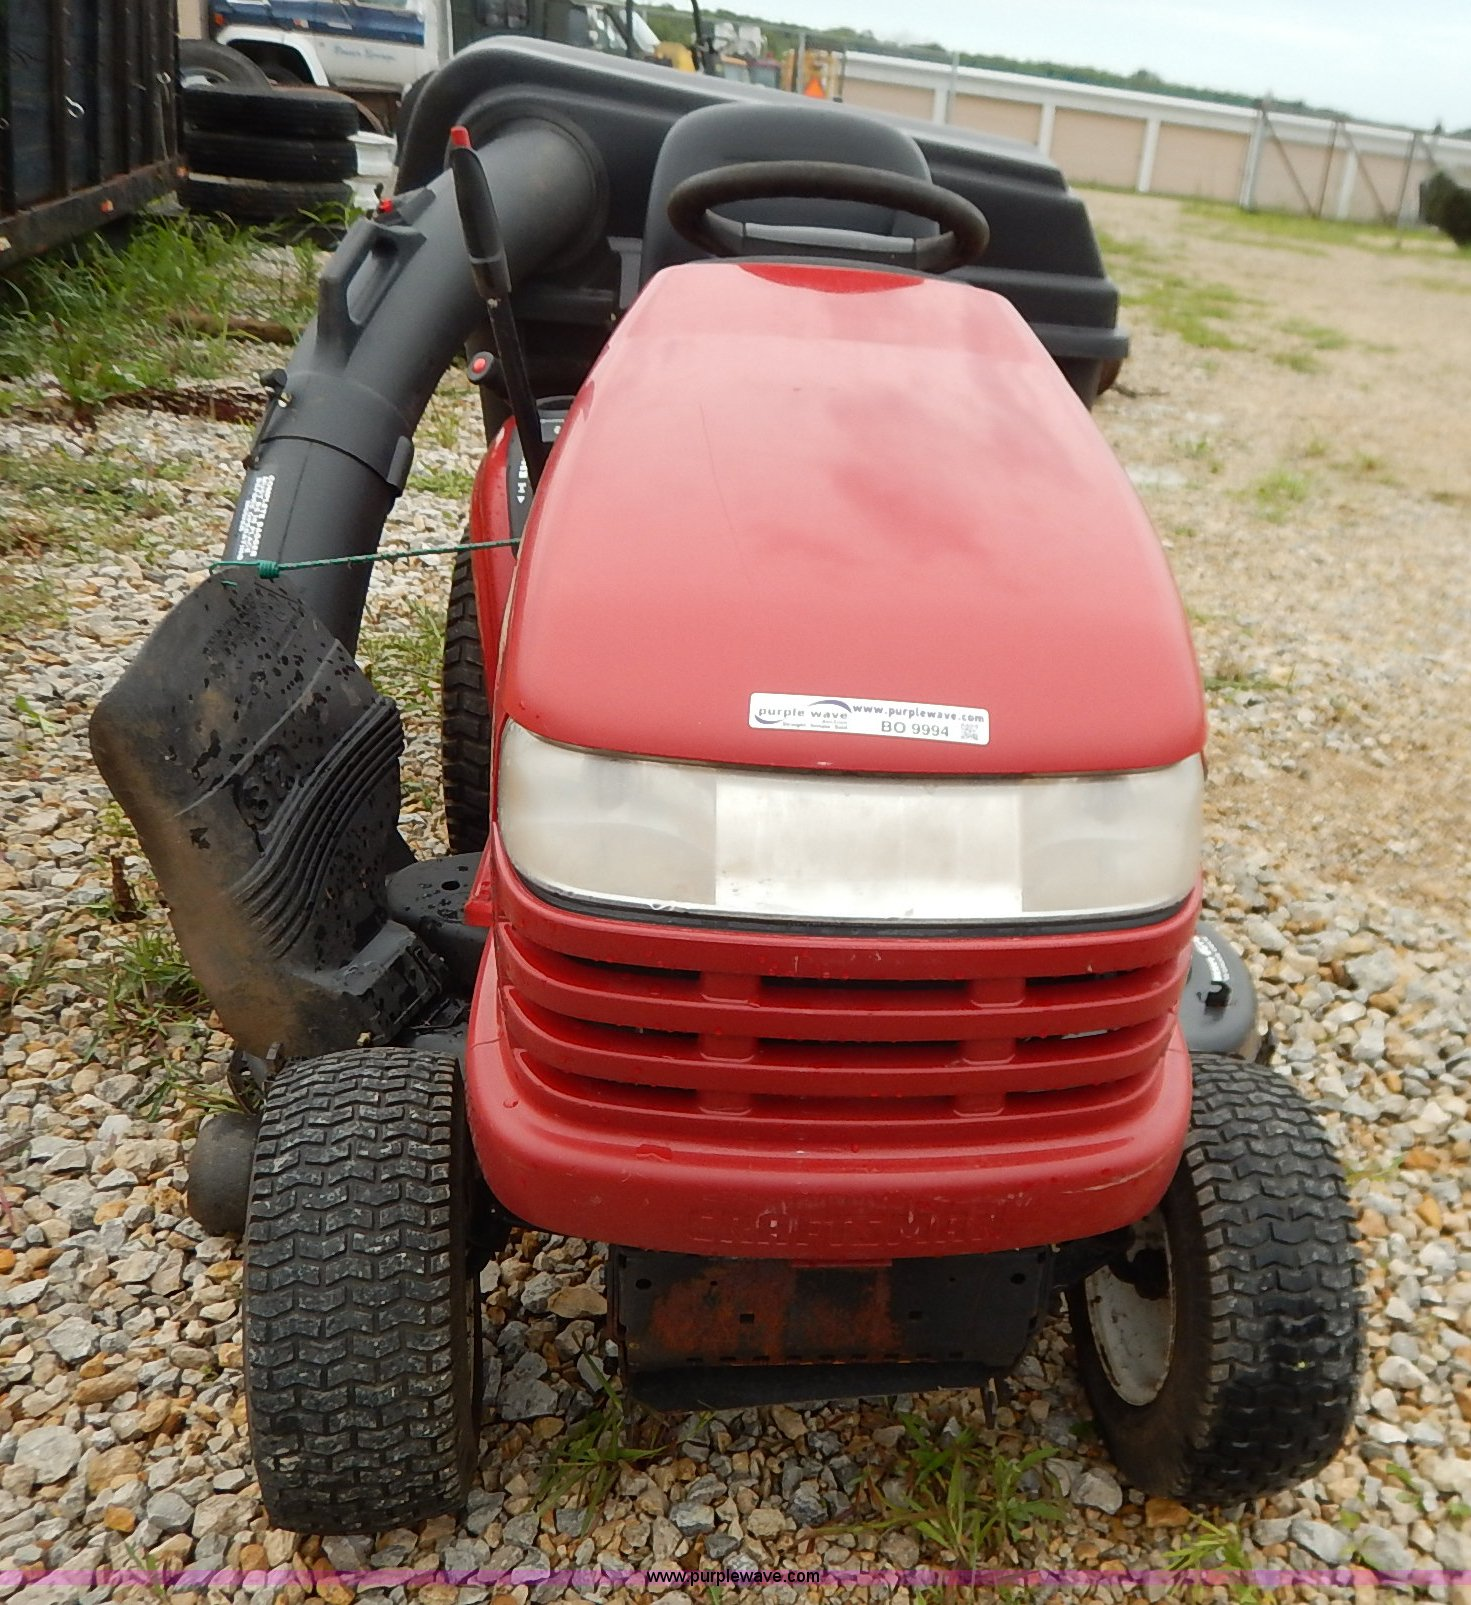 hight resolution of  craftsman gt5000 riding mower with bagger full size in new window